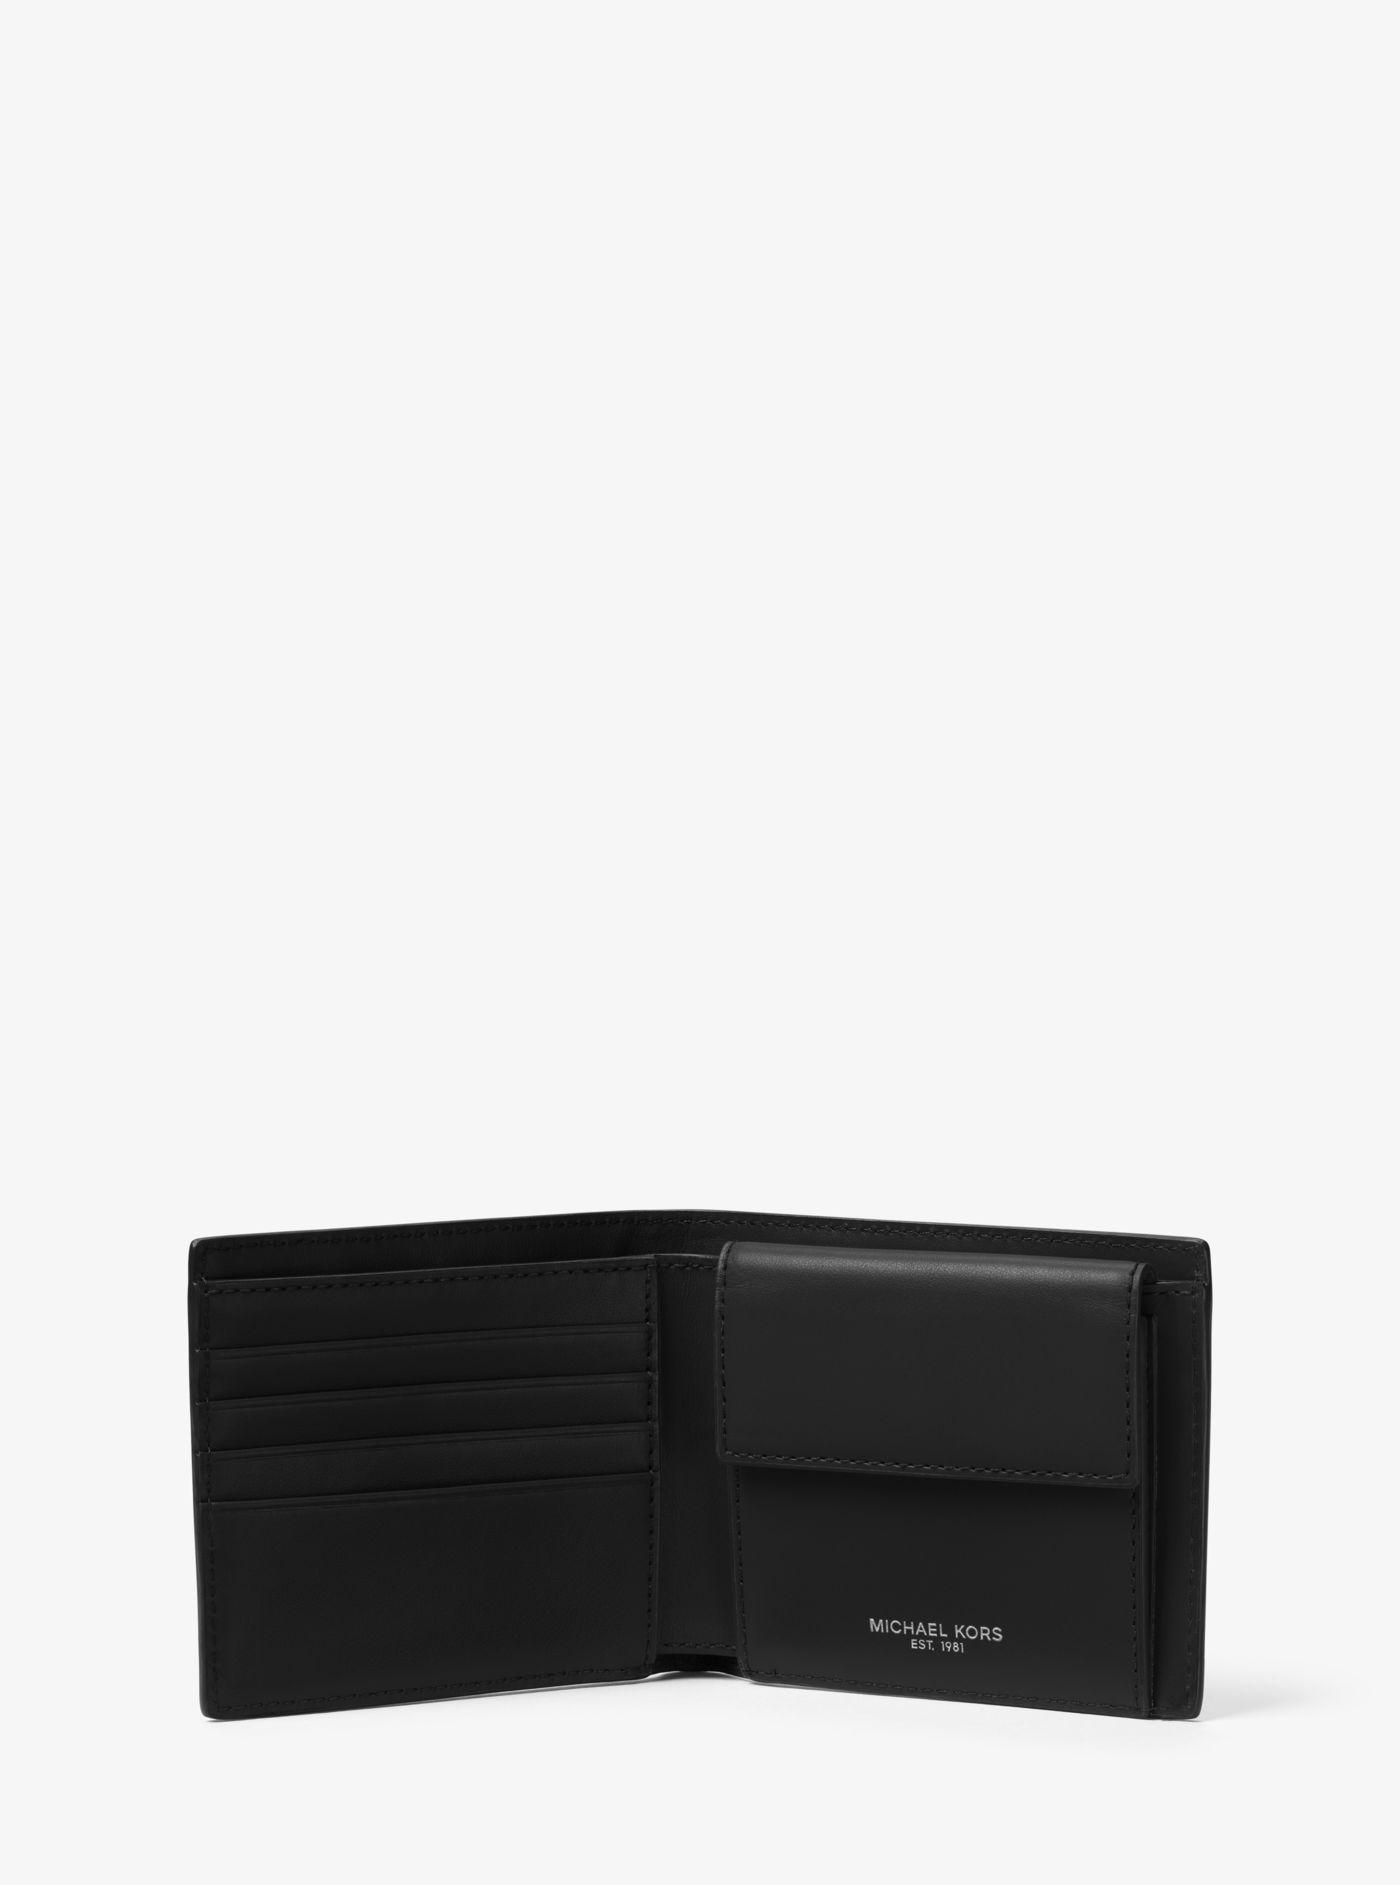 d7f9acc9cace Michael Kors Odin Leather Billfold Wallet In Black For Men Lyst